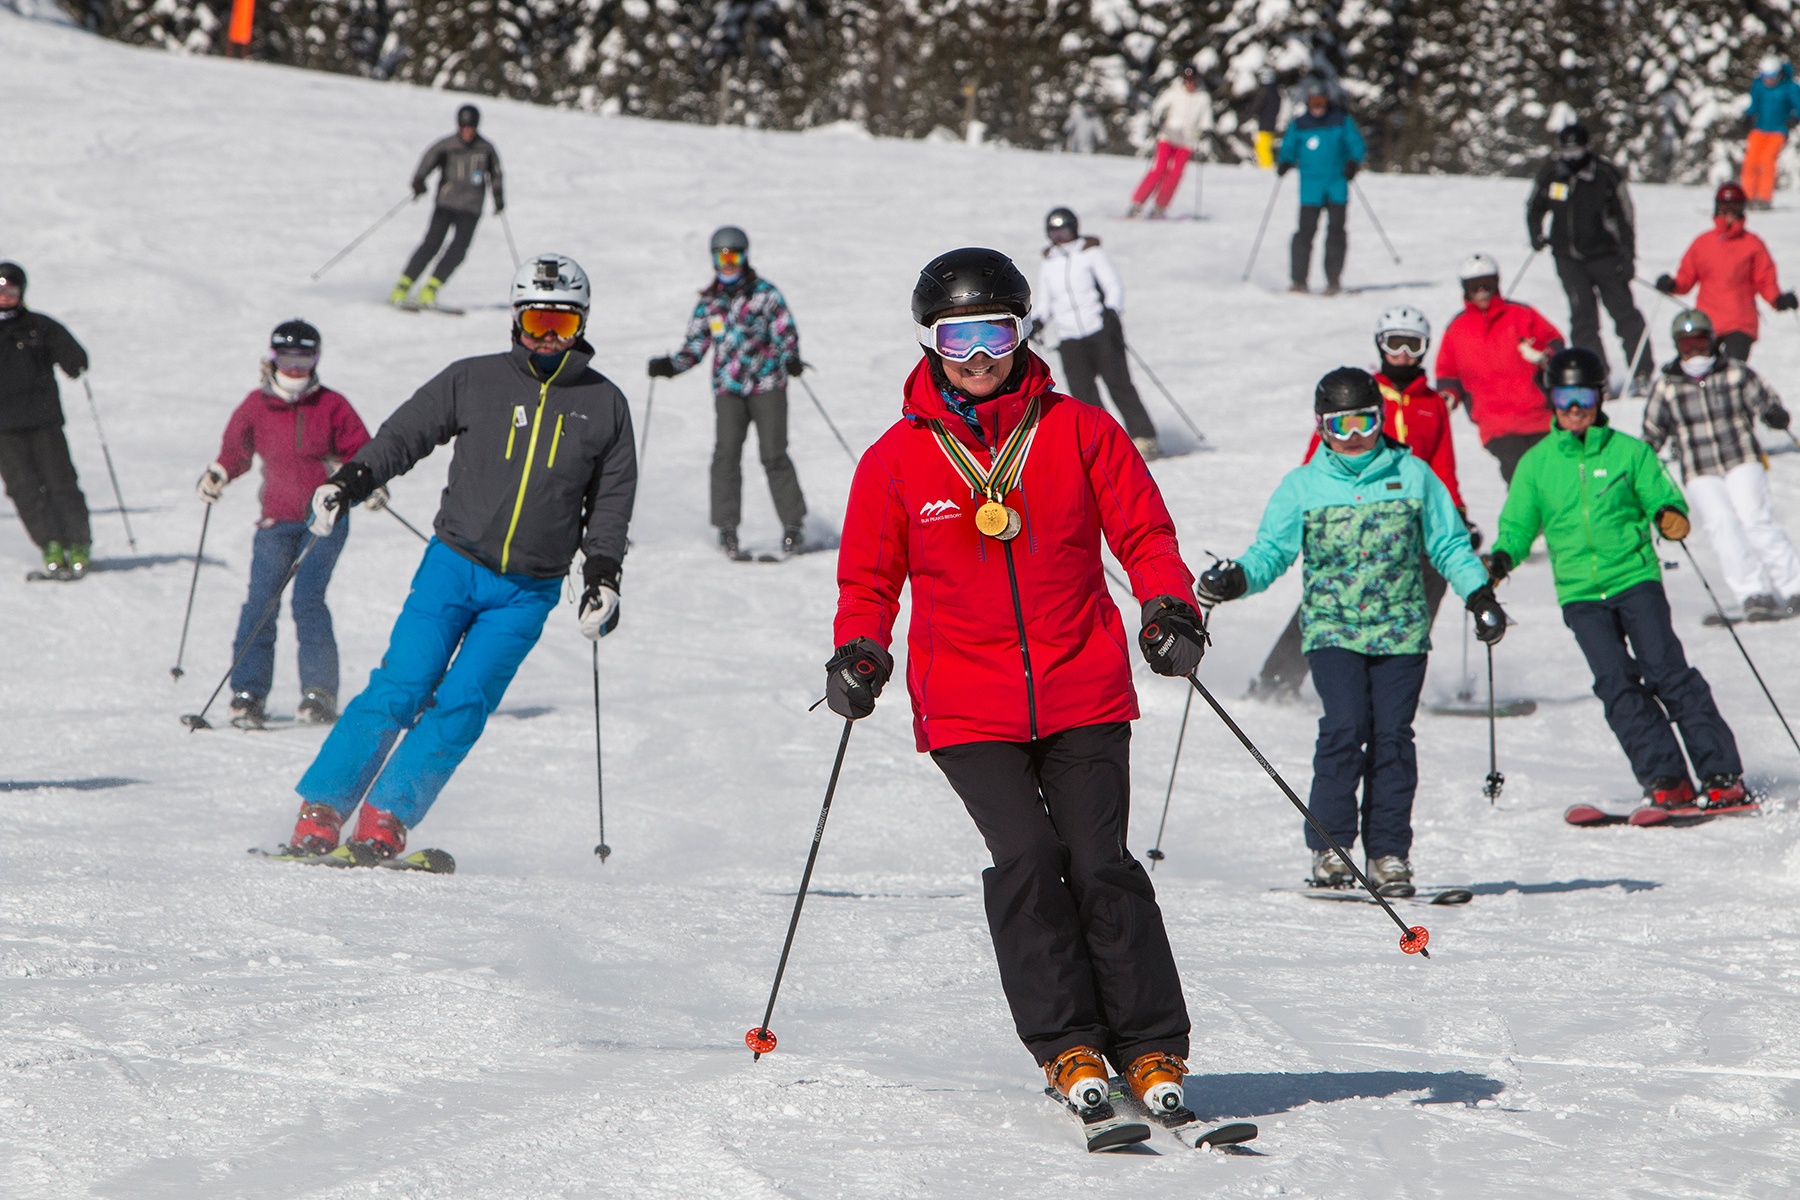 Nancy Greene Skiing With Guests